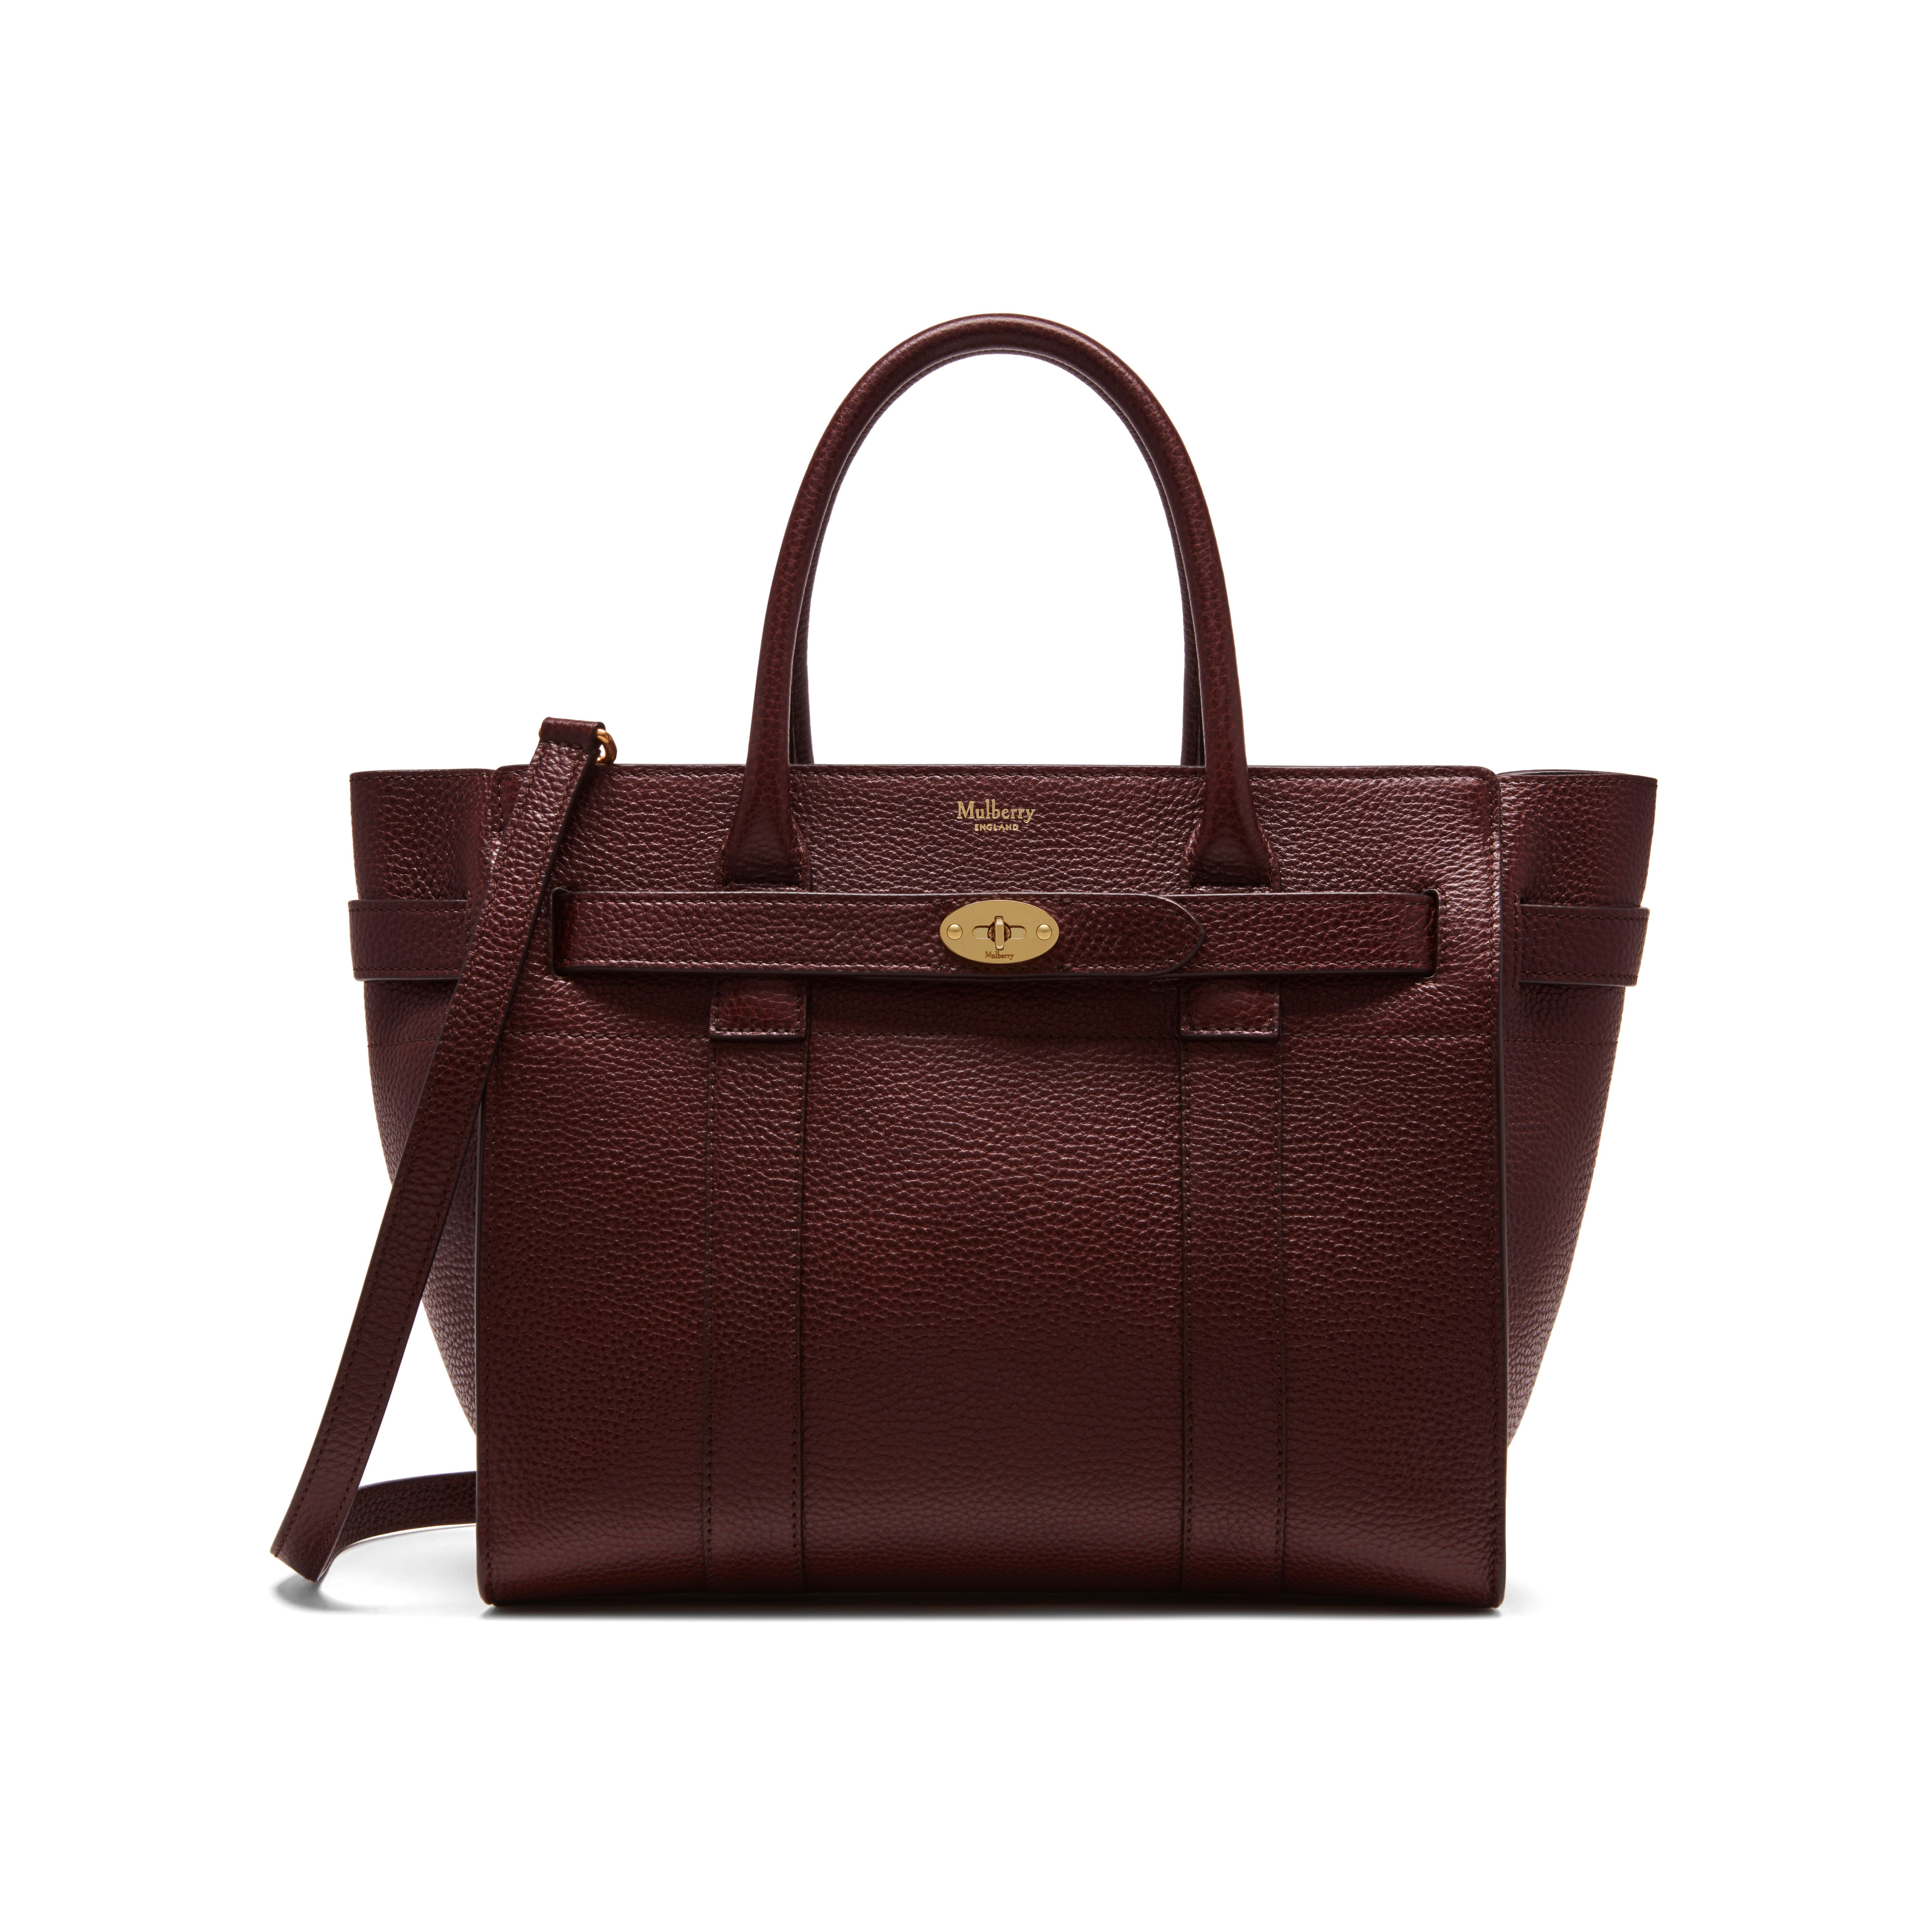 Shop the Small Zipped Bayswater in Oxblood Natural Grain Leather. The  Bayswater is our most 8ec3246790